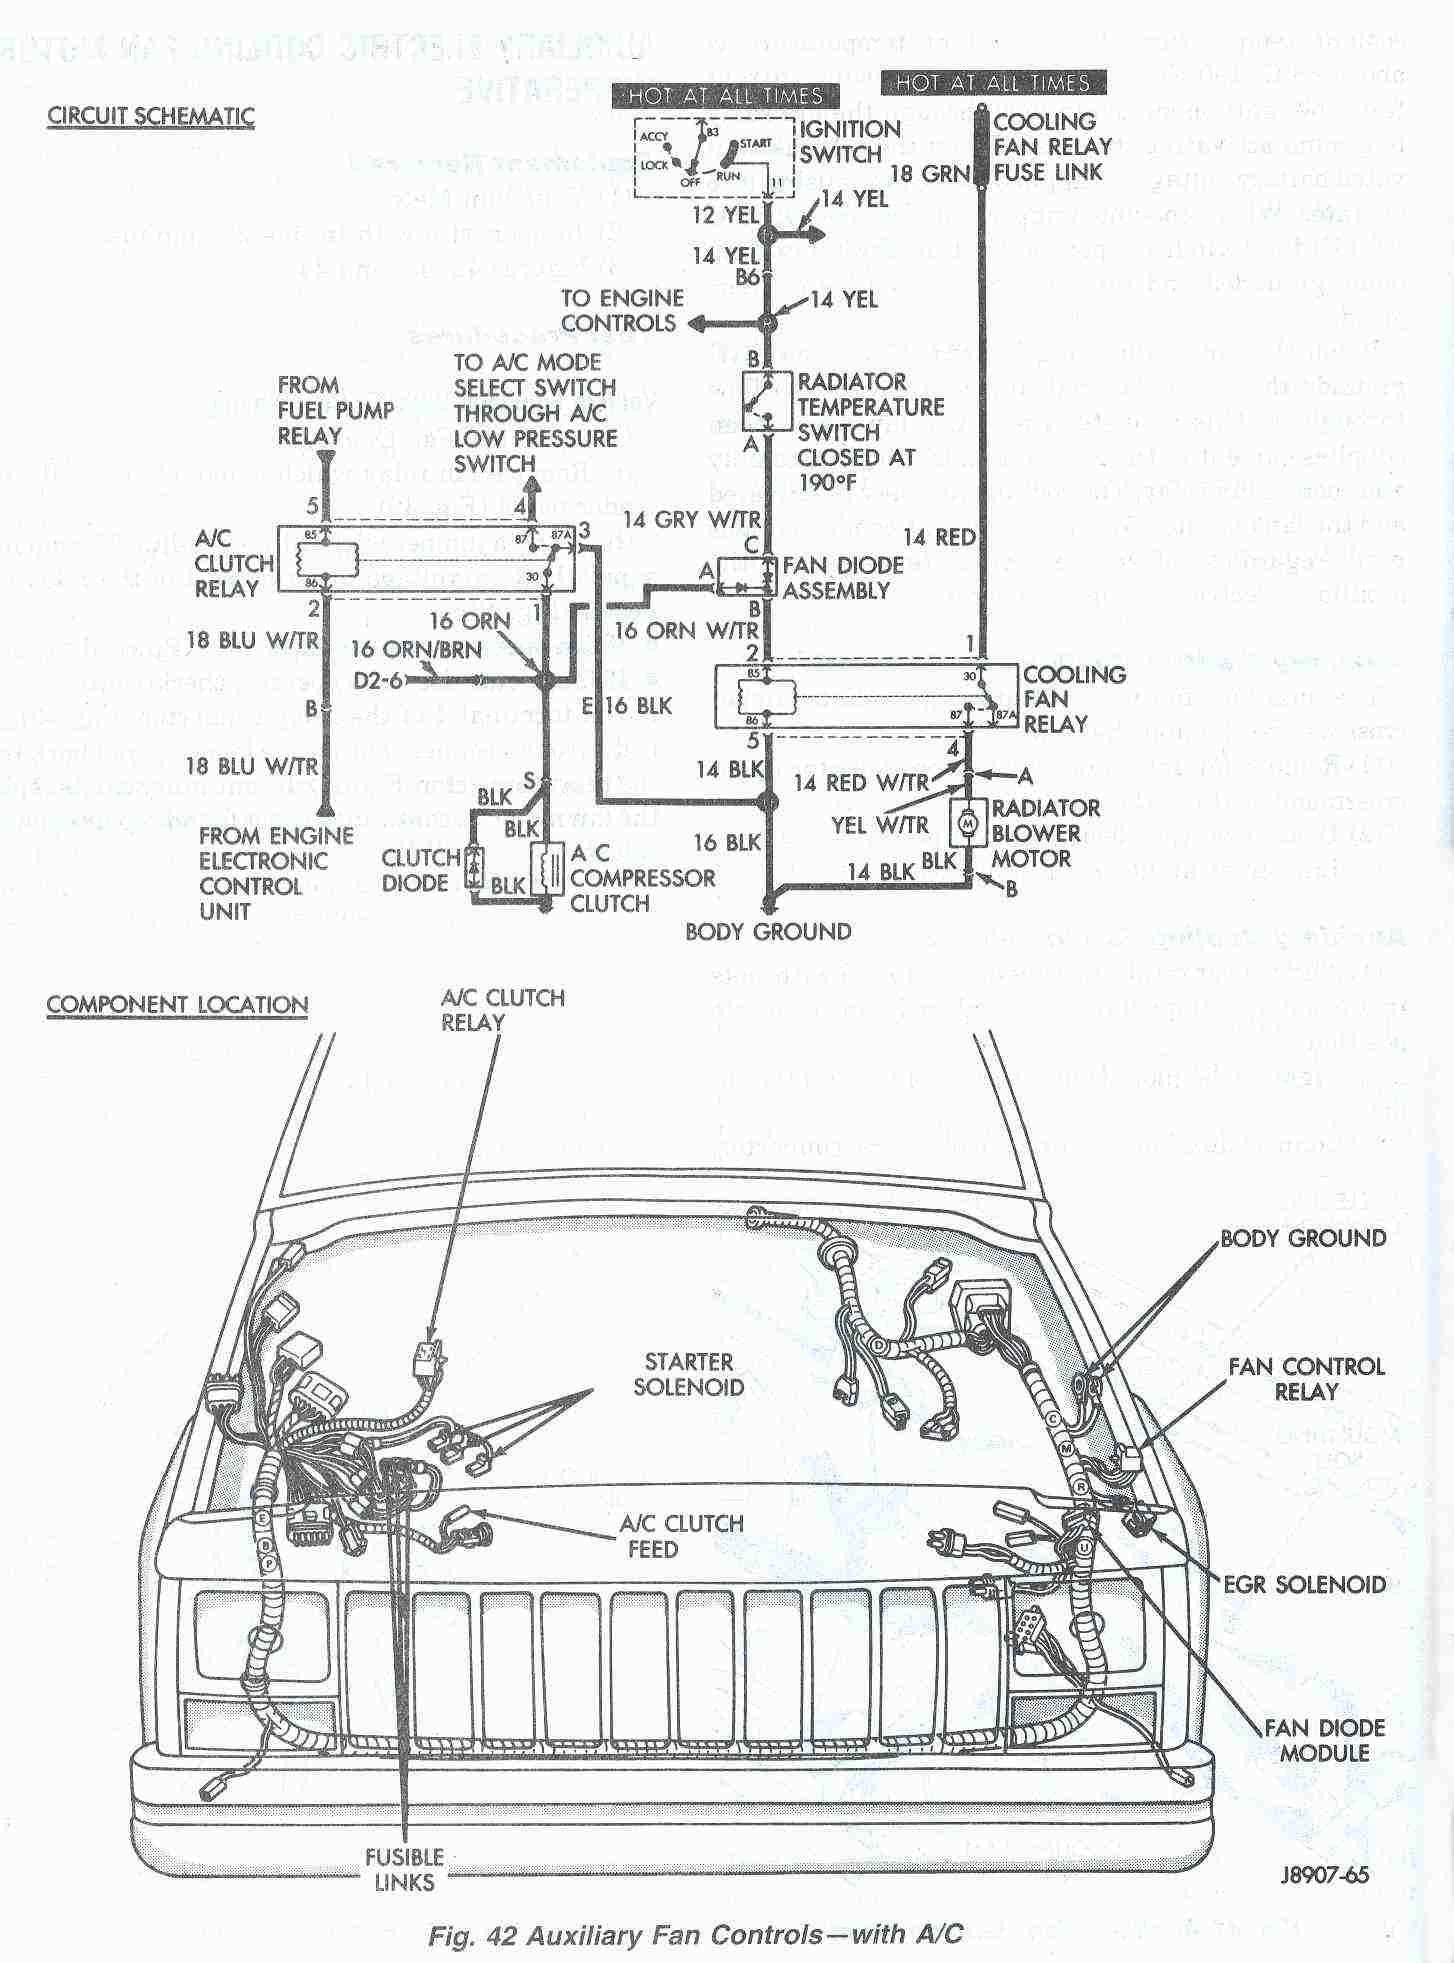 70 Awesome 2001 Jeep Grand Cherokee Cooling Fan Wiring Diagram in 2020 | Jeep  cherokee, Jeep cherokee sport, Jeep cherokee headlightsPinterest